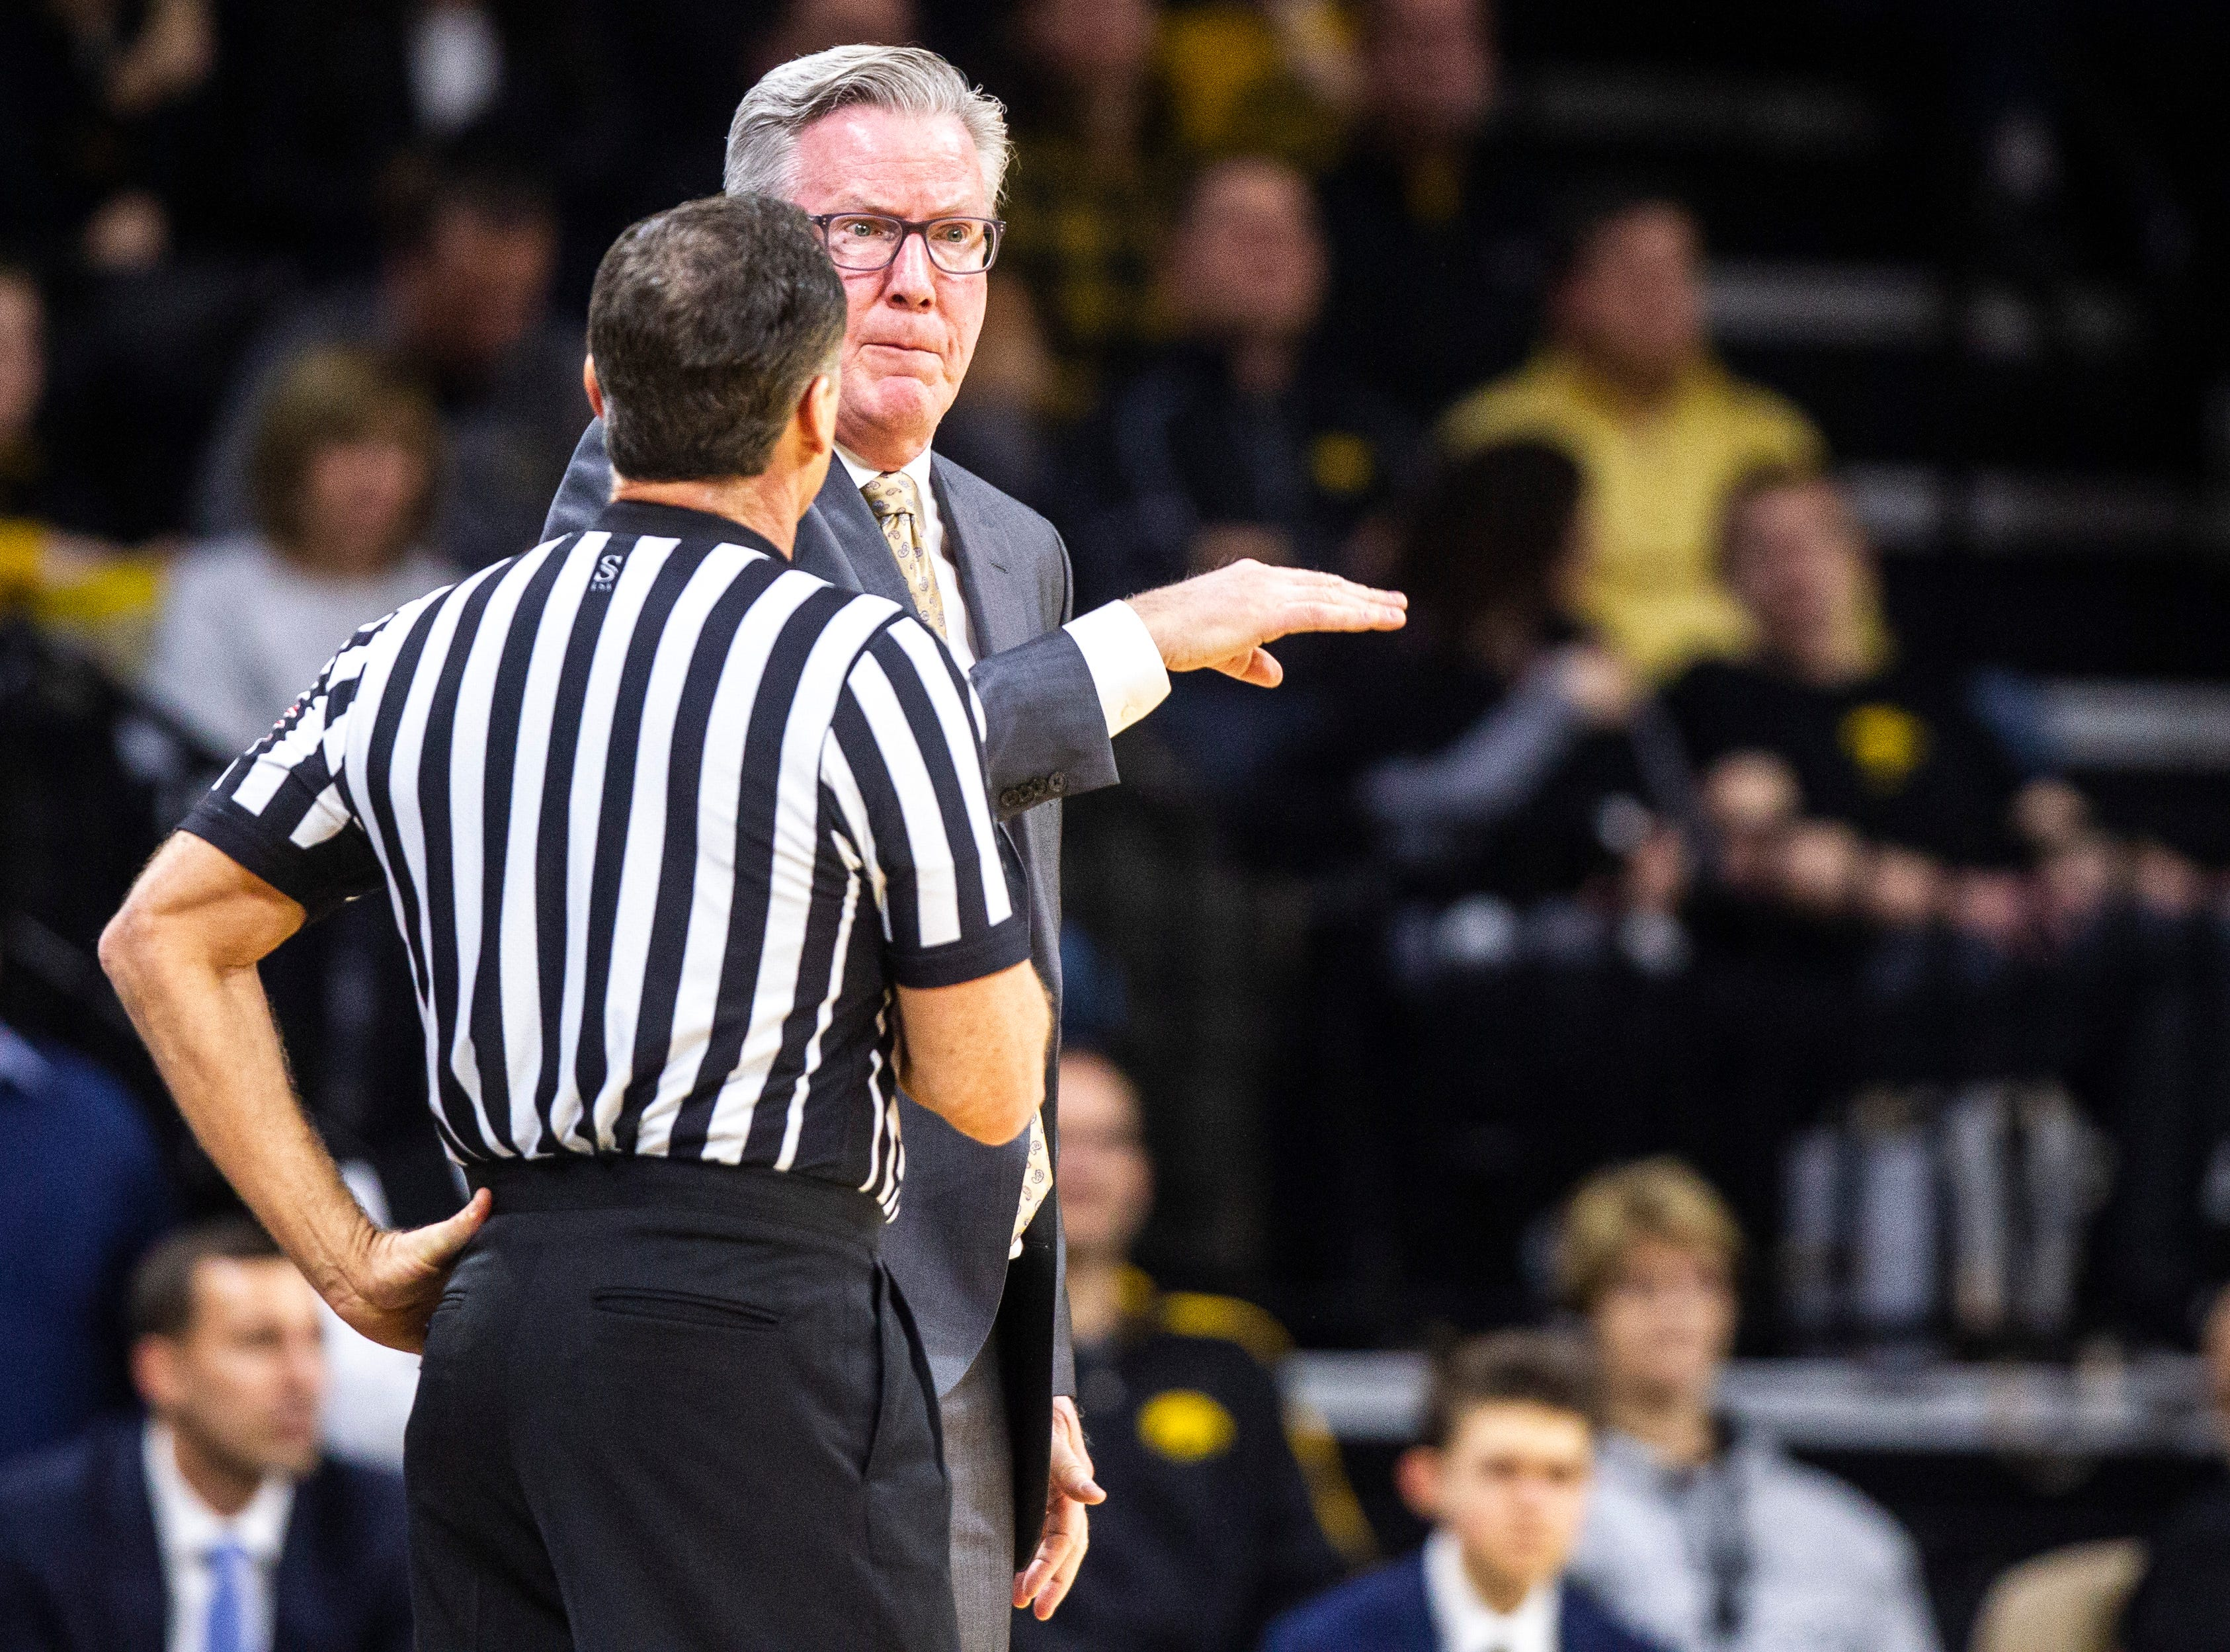 Iowa men's basketball head coach Fran McCaffery reacts to a call during a NCAA Big Ten Conference men's basketball game on Tuesday, Feb. 19, 2019 at Carver-Hawkeye Arena in Iowa City, Iowa.